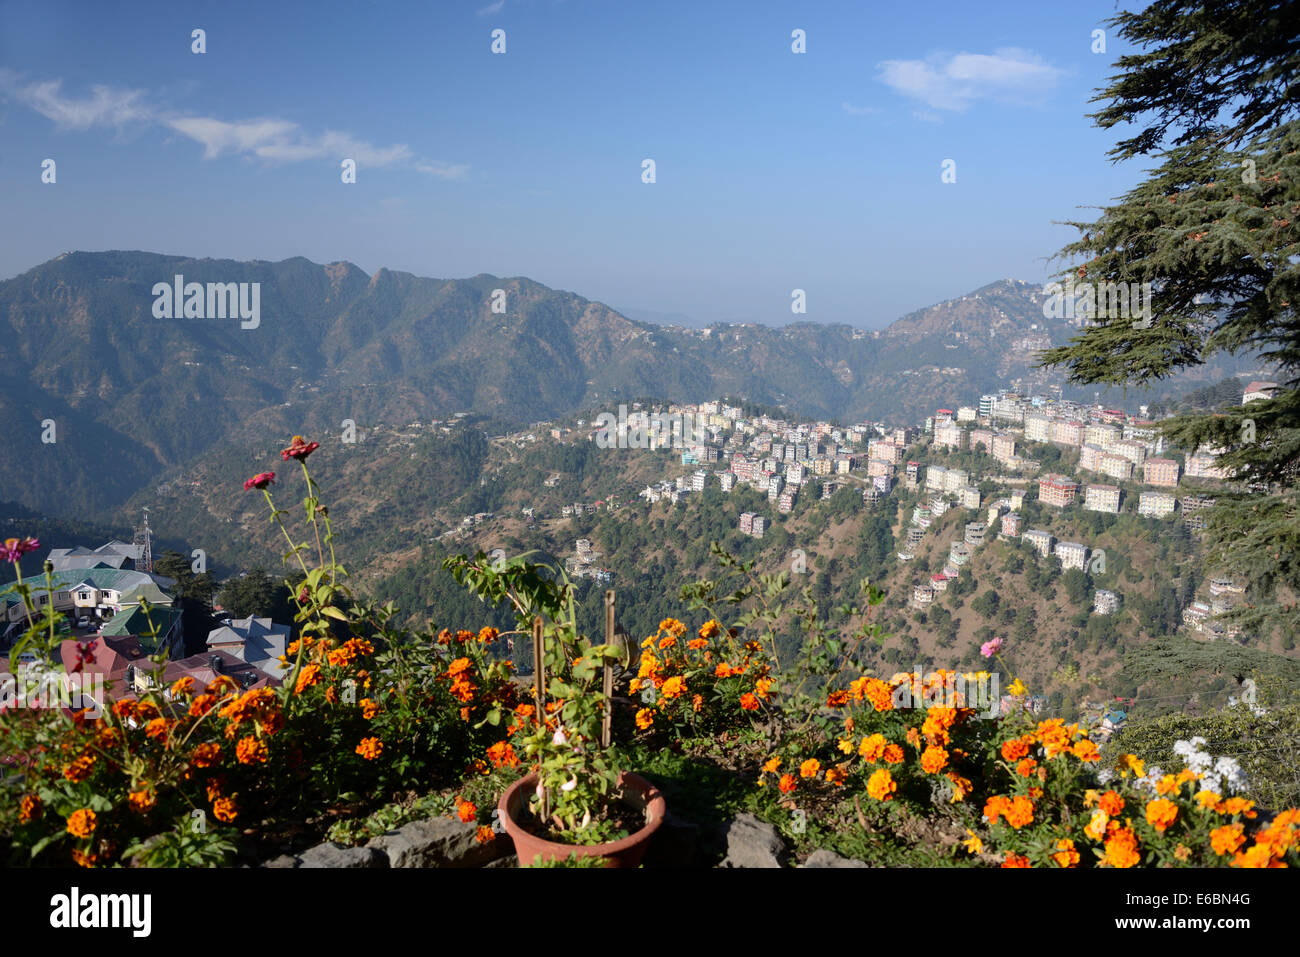 A morning view over part of Shimla suburbs on the Himalayan foothills in  Himachal Pradesh, India. - Stock Image